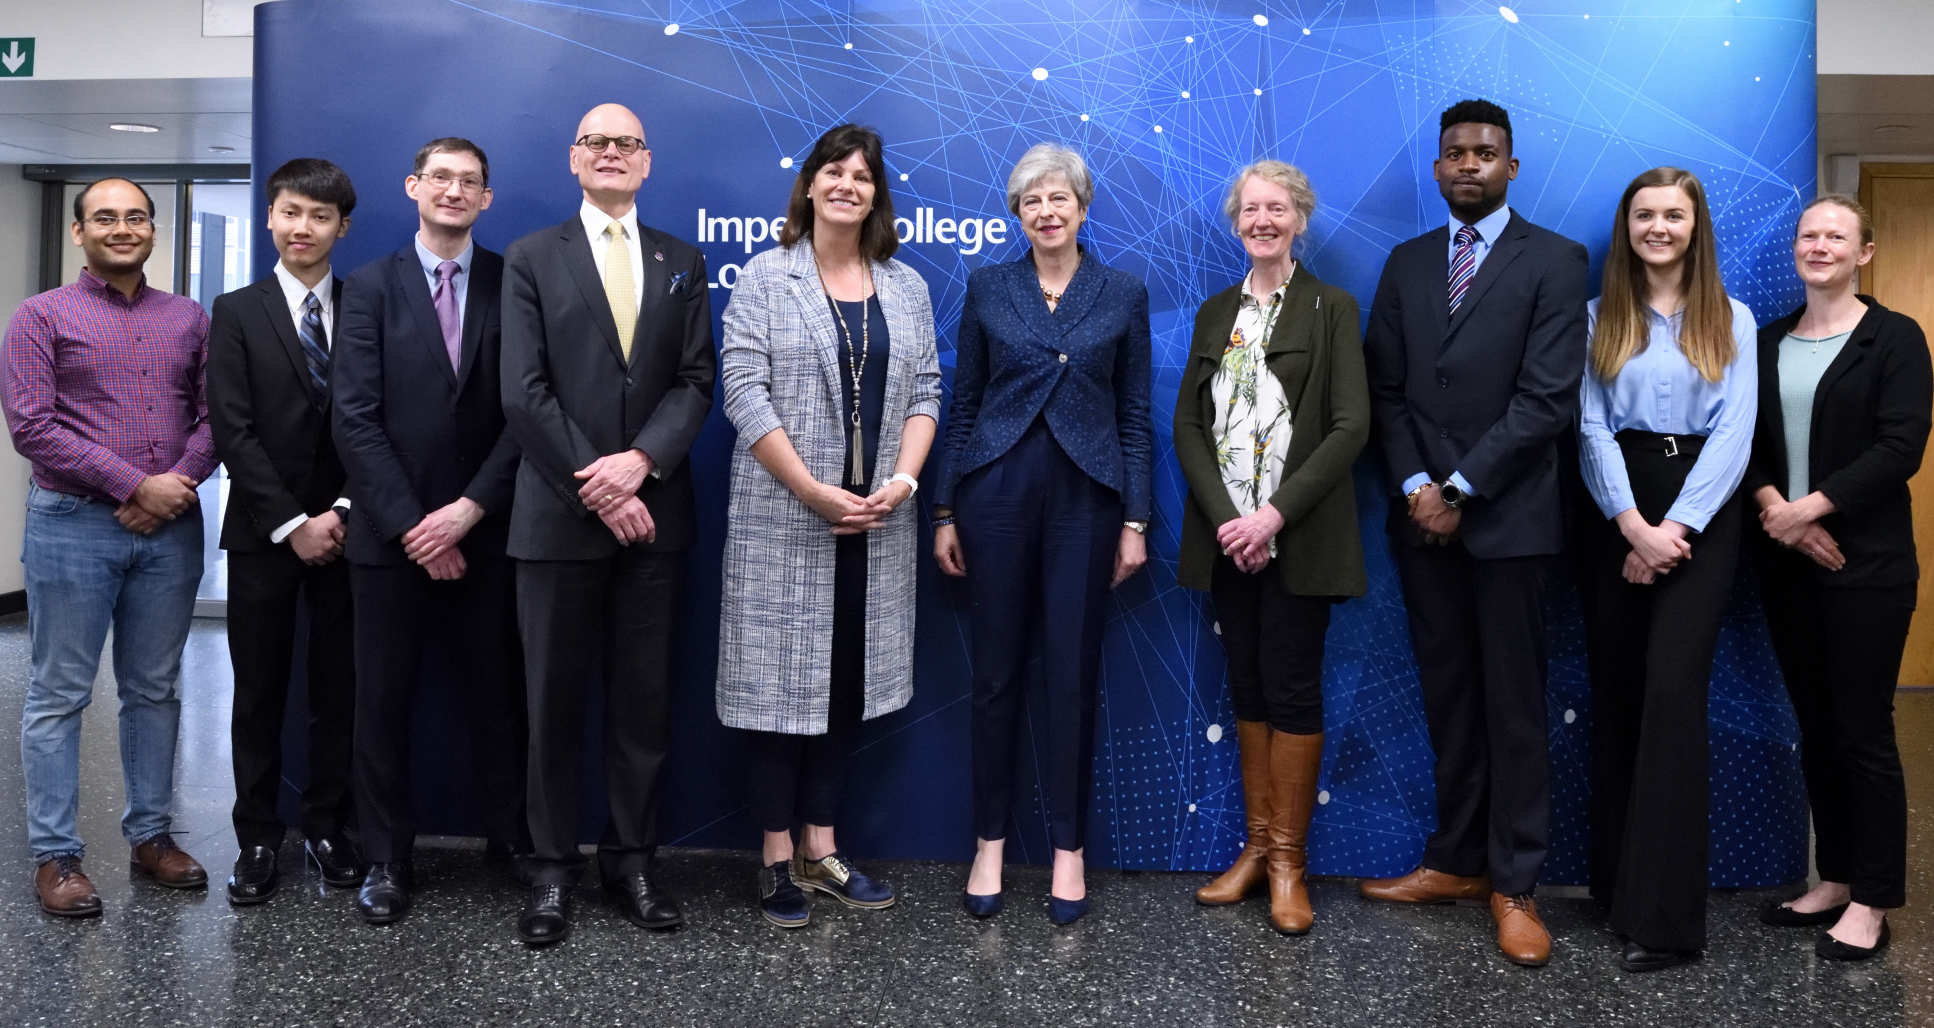 Prime Minister Theresa May with students and academics at Imperial